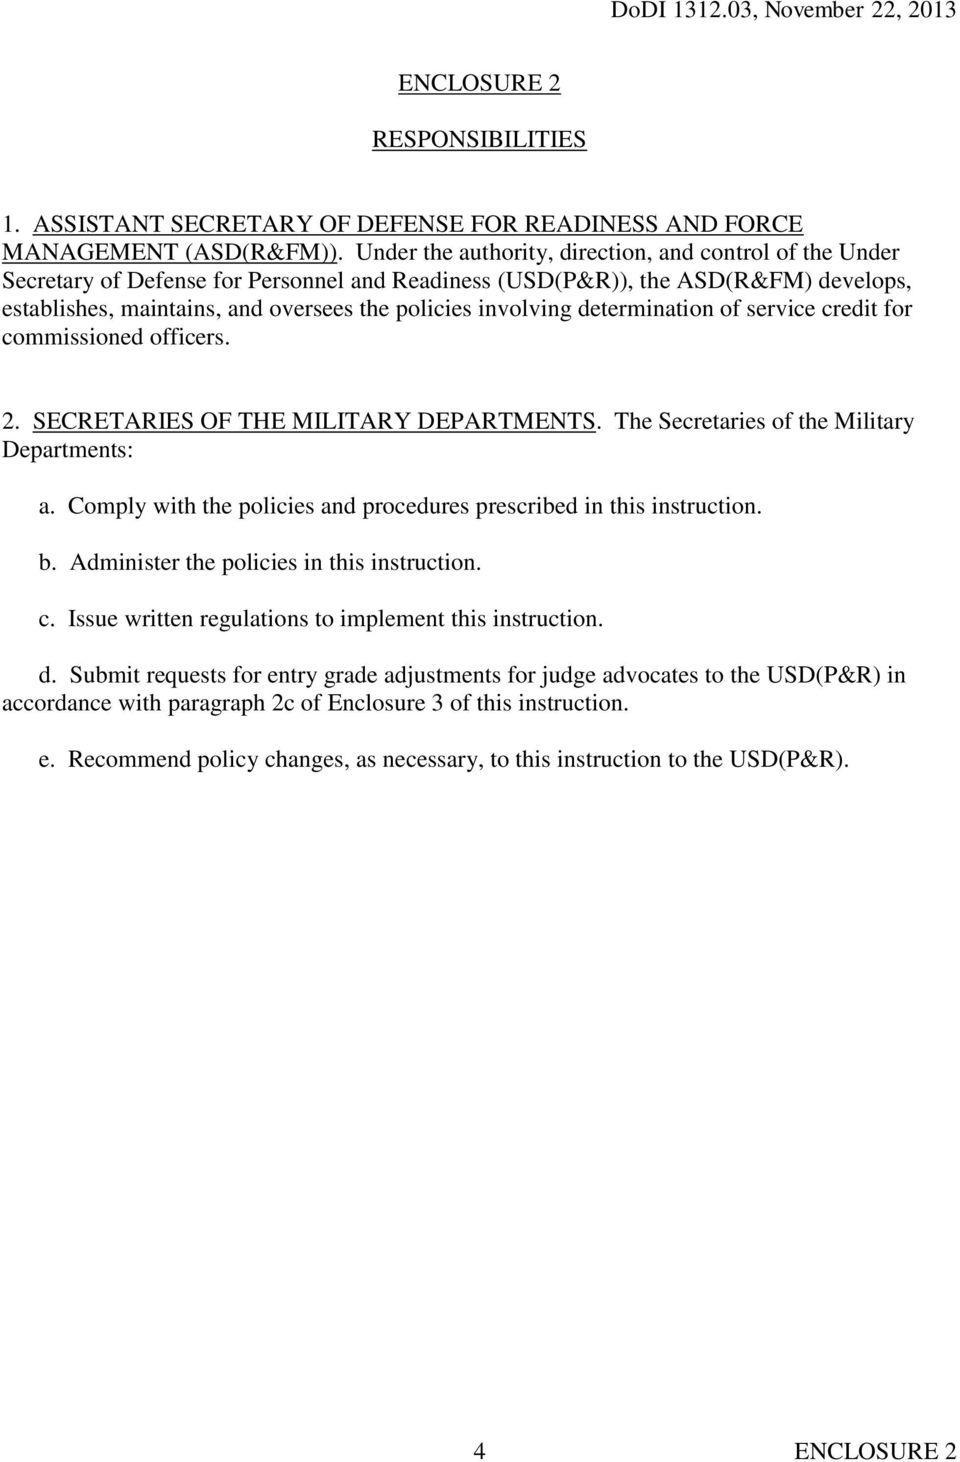 involving determination of service credit for commissioned officers. 2. SECRETARIES OF THE MILITARY DEPARTMENTS. The Secretaries of the Military Departments: a.